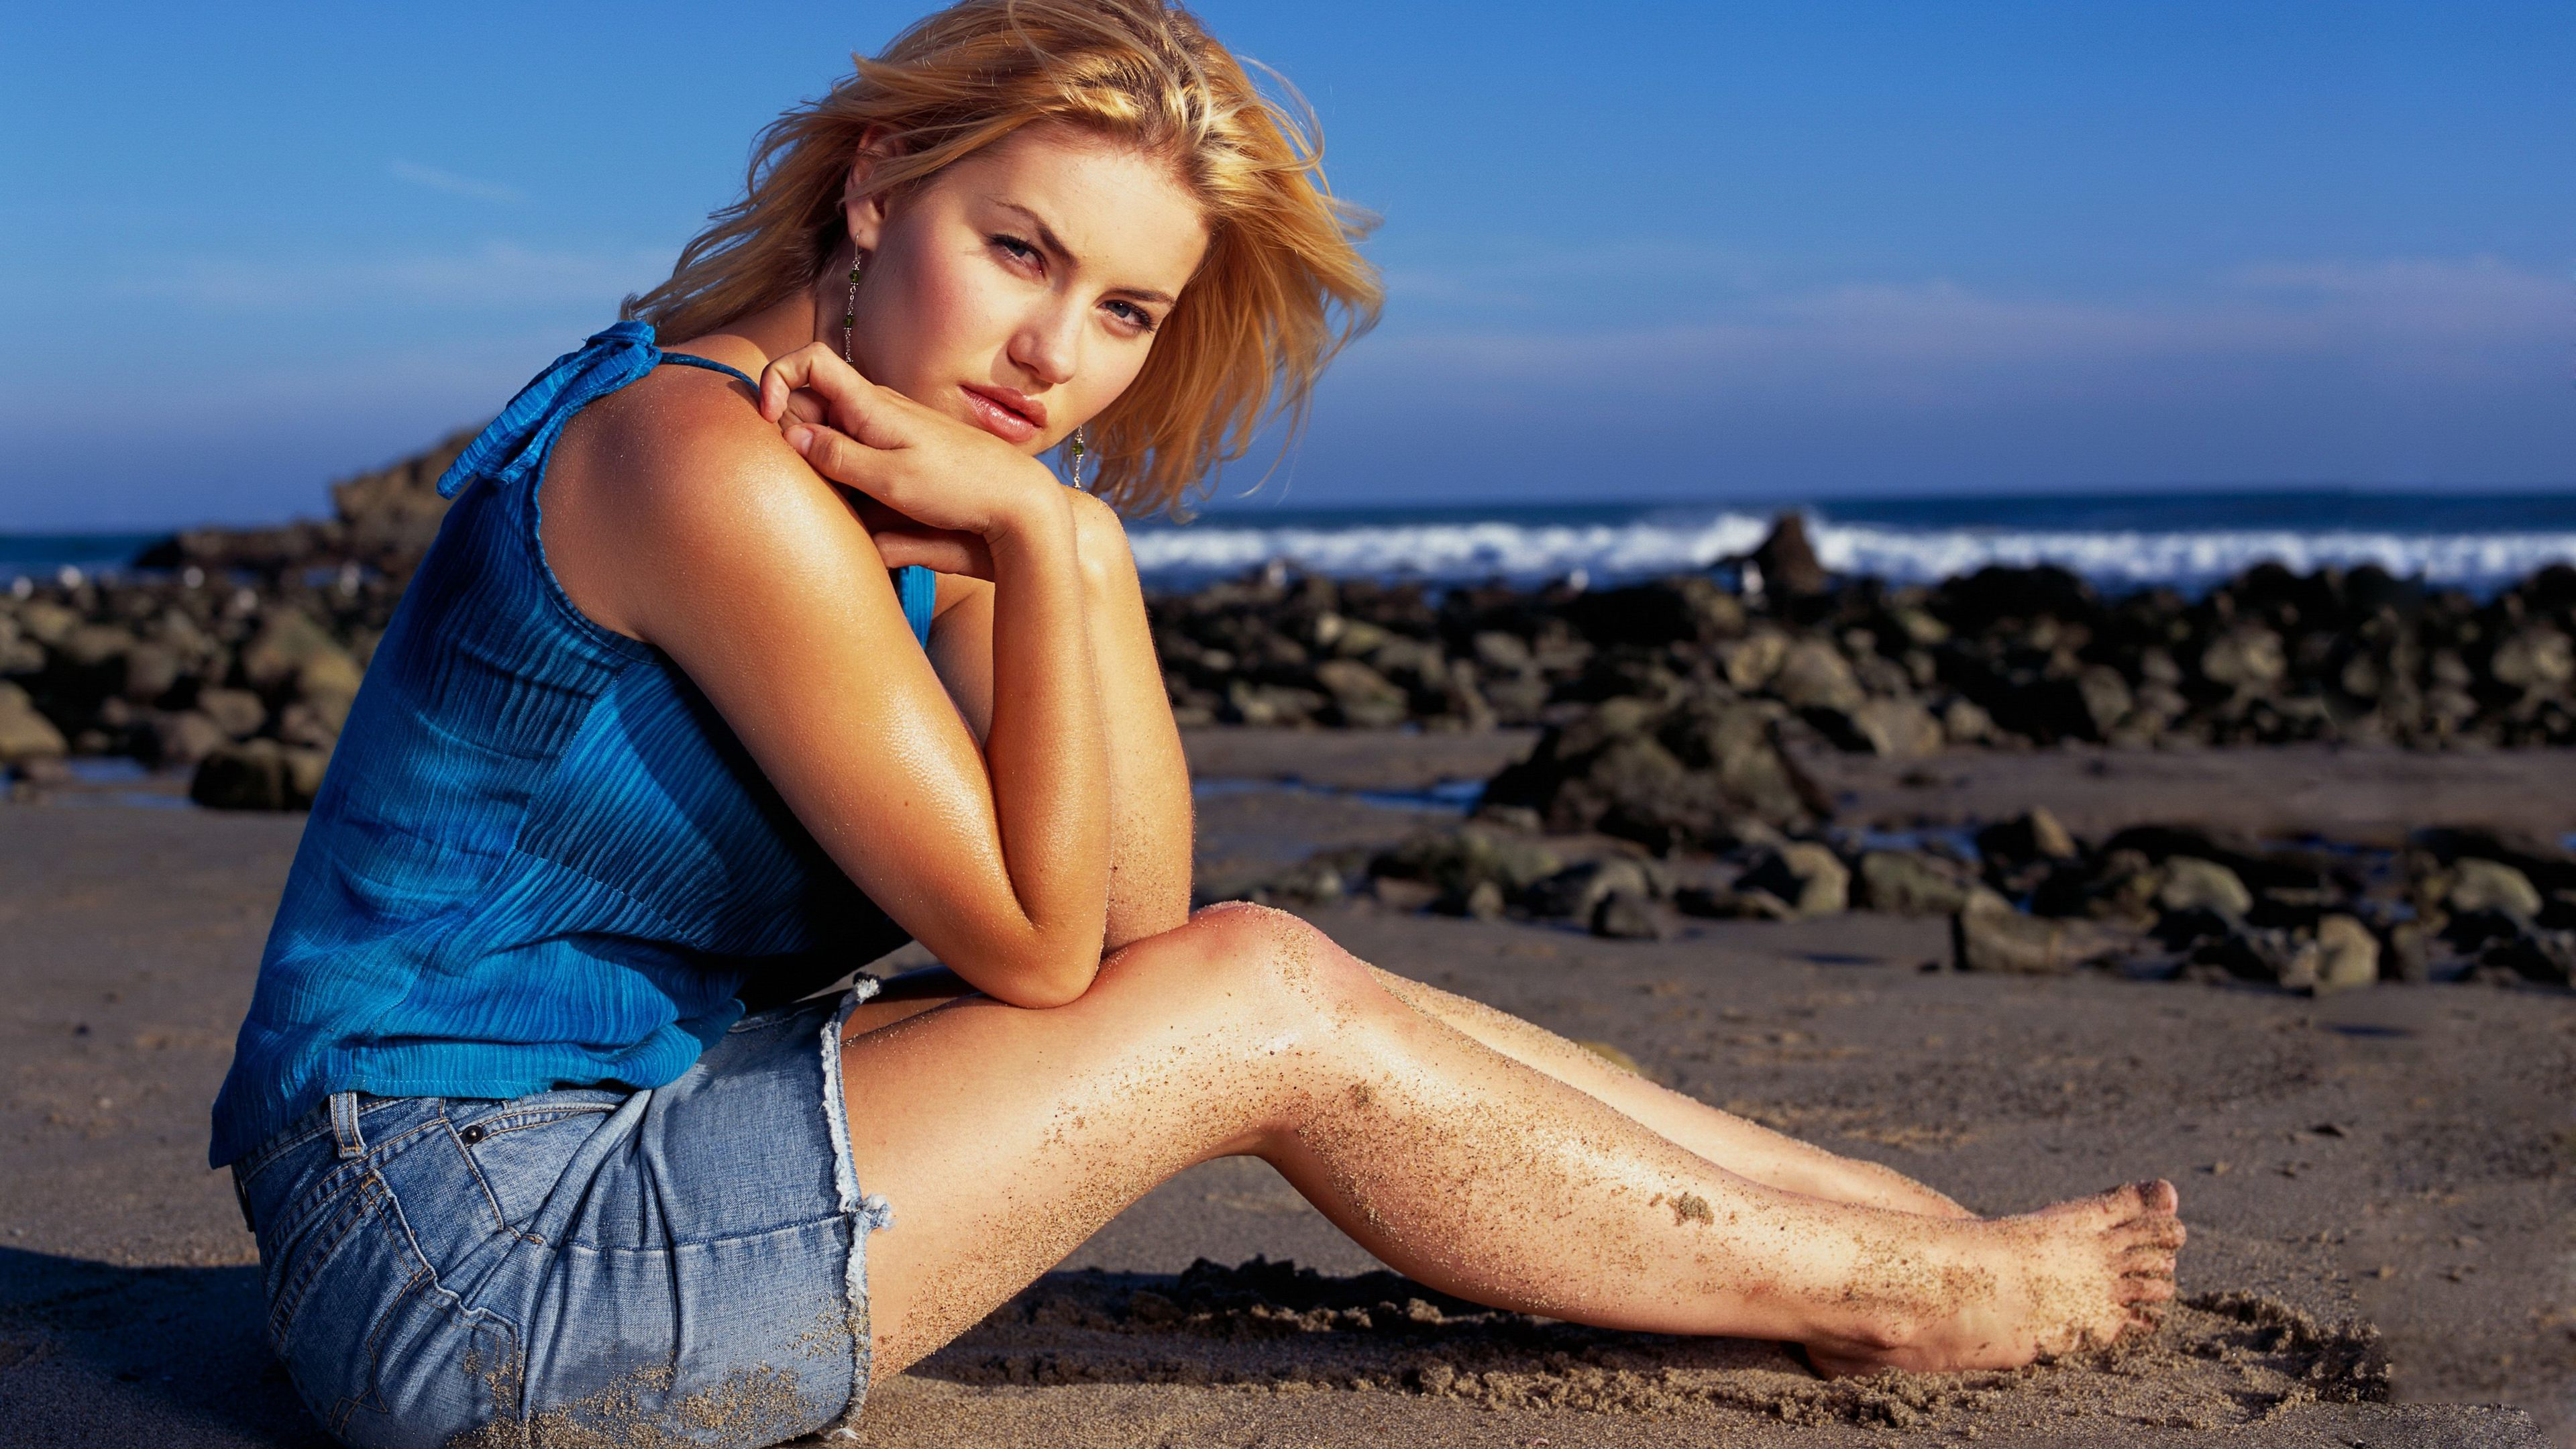 elisha cuthbert new 1543104599 - Elisha Cuthbert New - hd-wallpapers, girls wallpapers, elisha cuthbert wallpapers, celebrities wallpapers, 5k wallpapers, 4k-wallpapers